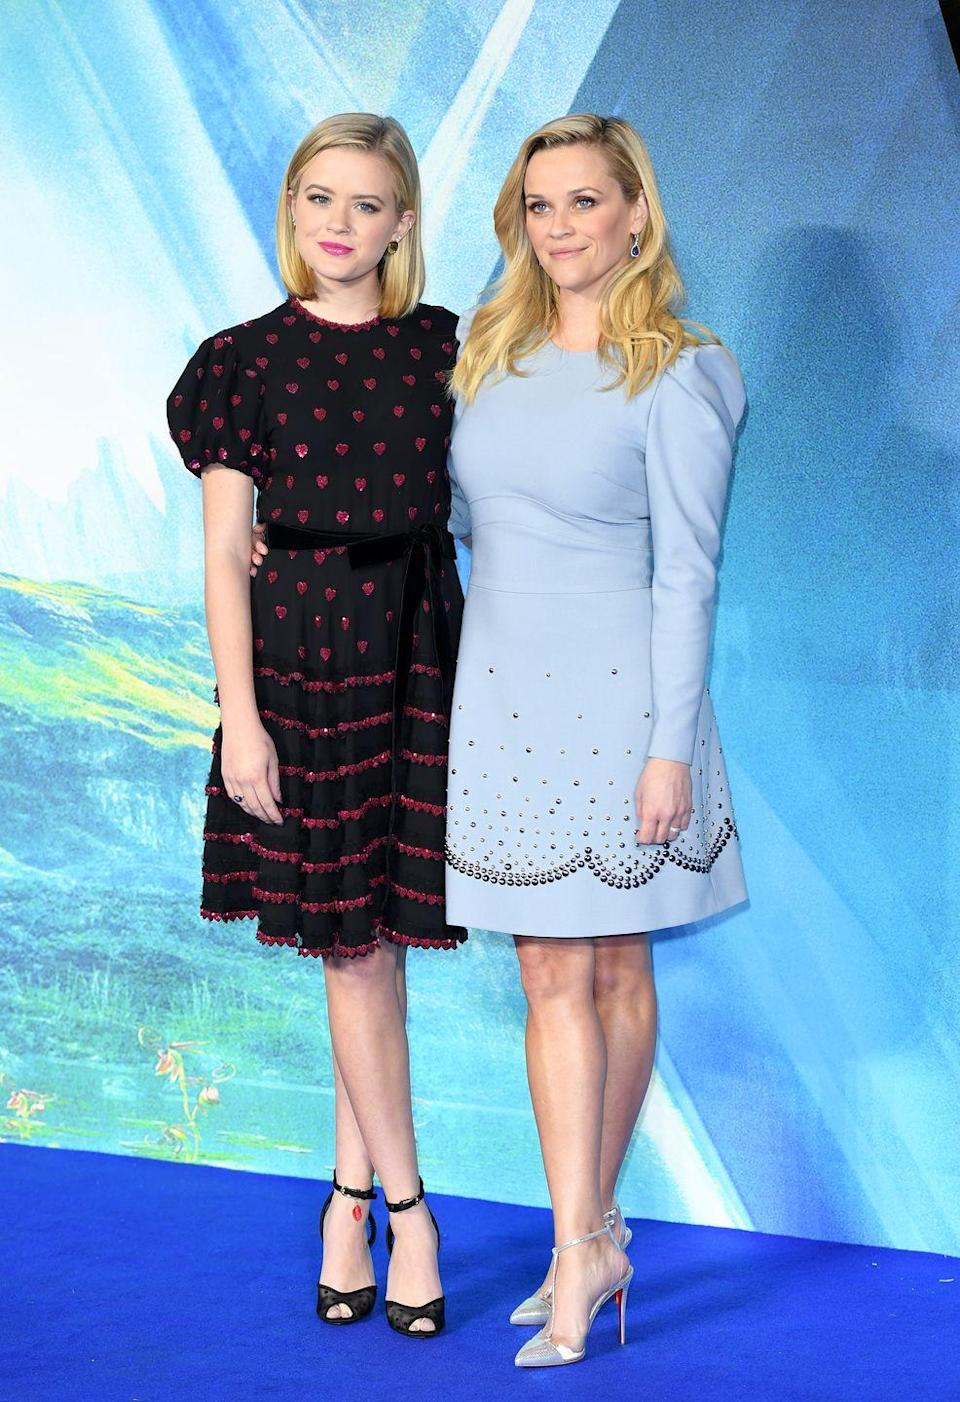 """<p>The mother-daughter duo posed on the blue carpet for the premiere of Reese's latest film, A Wrinkle In Time, in London. Reese wore Tiffany & Co.<span class=""""redactor-invisible-space""""> jewellery and an Elie Saab dress to the event. </span></p>"""